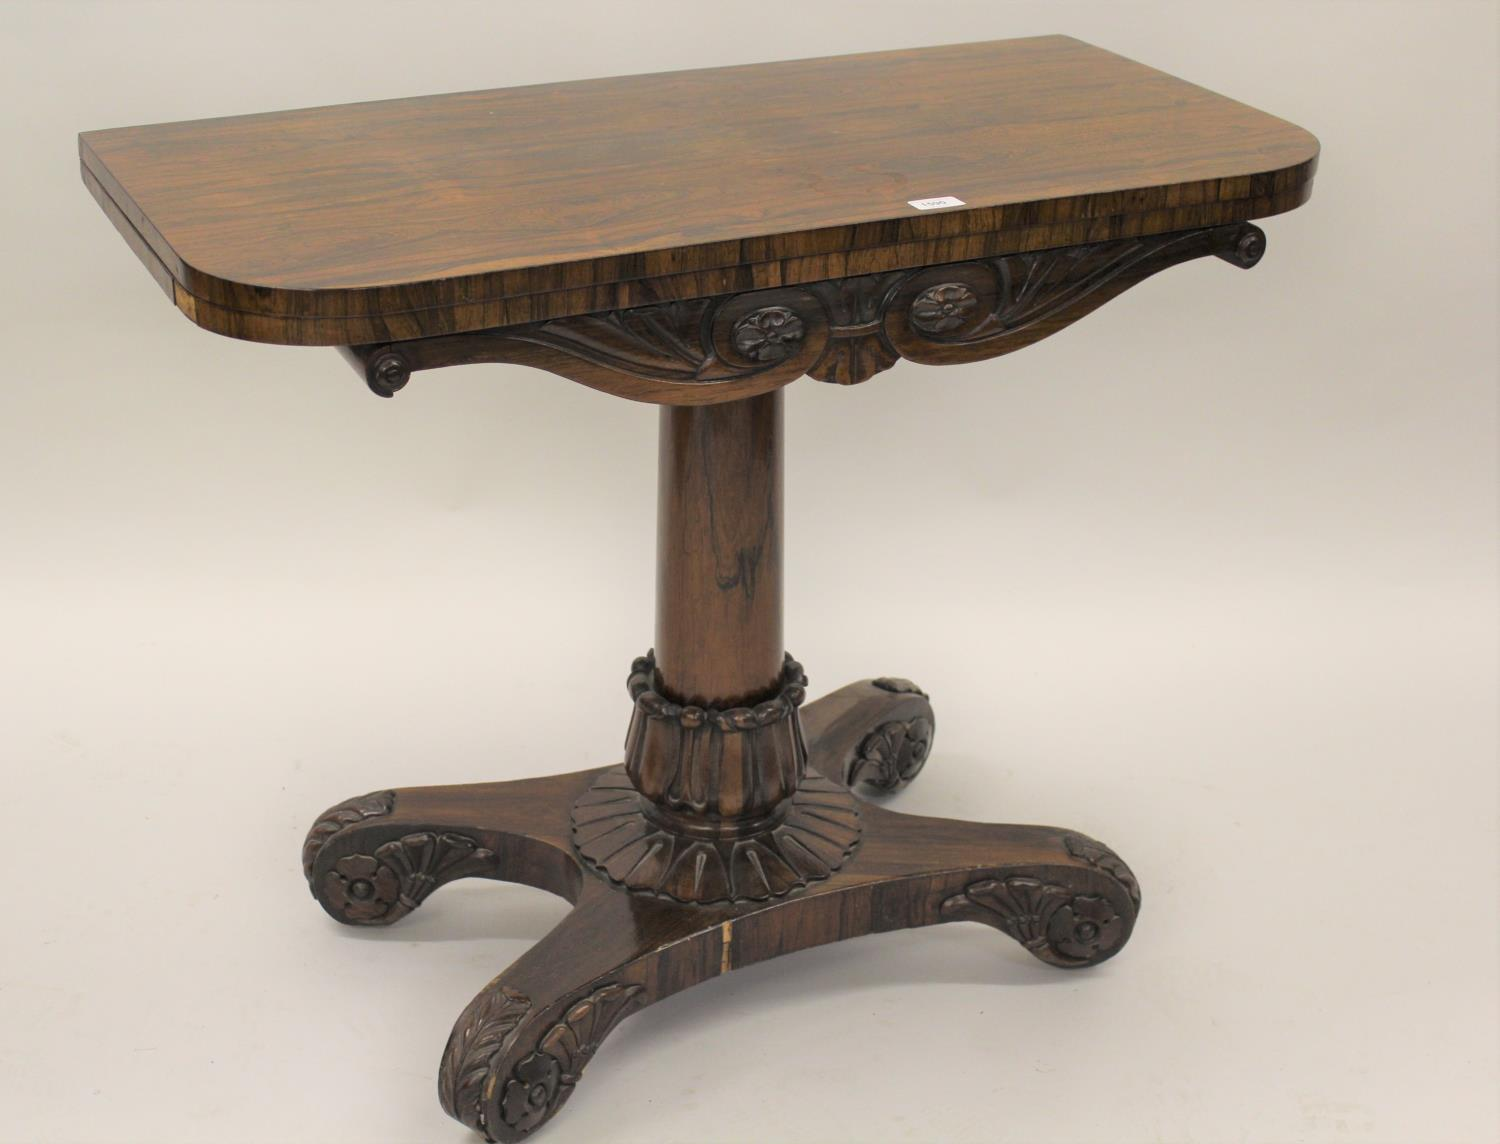 William IV rosewood fold-over card table with tulip carved column support and quadruped base,